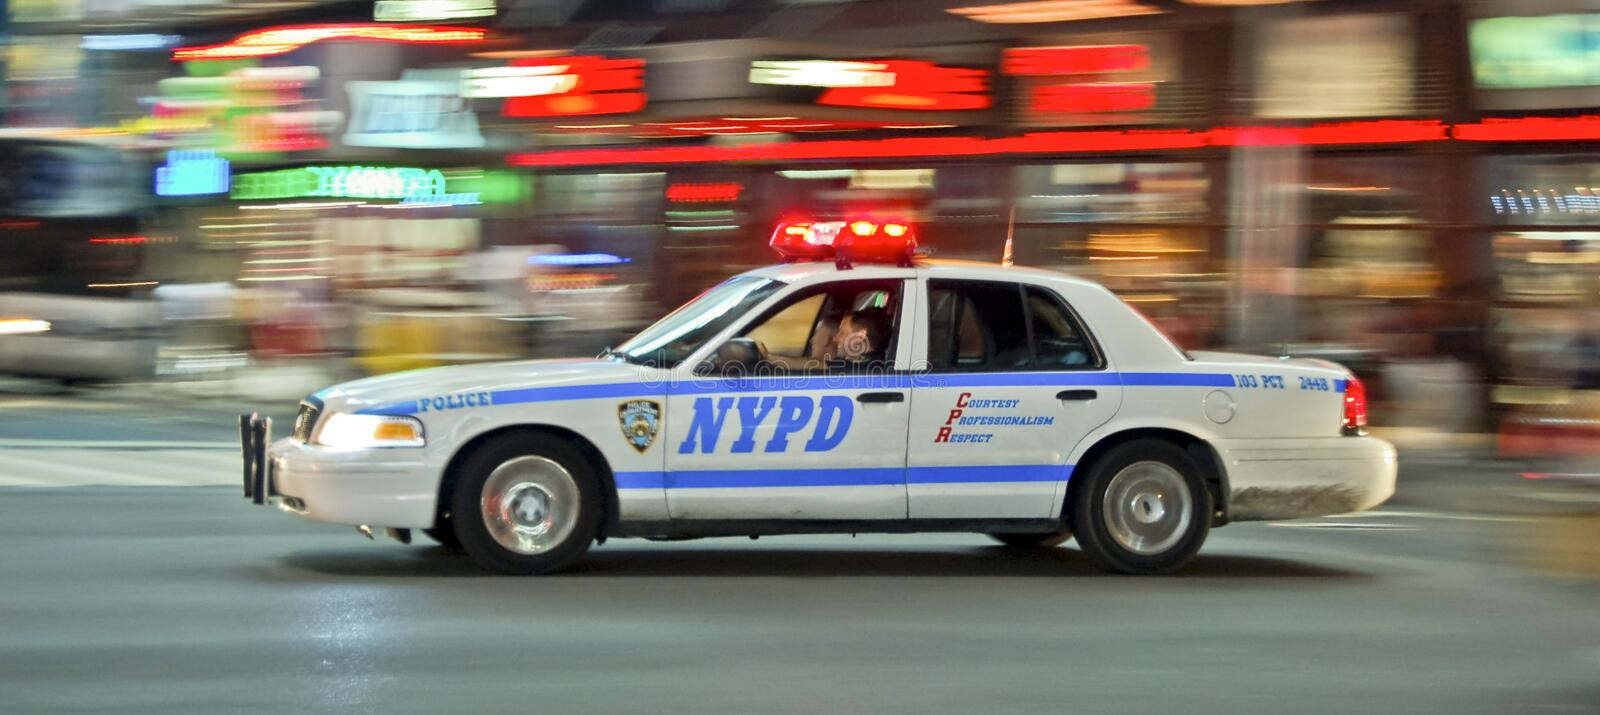 NYPD high speed stock image